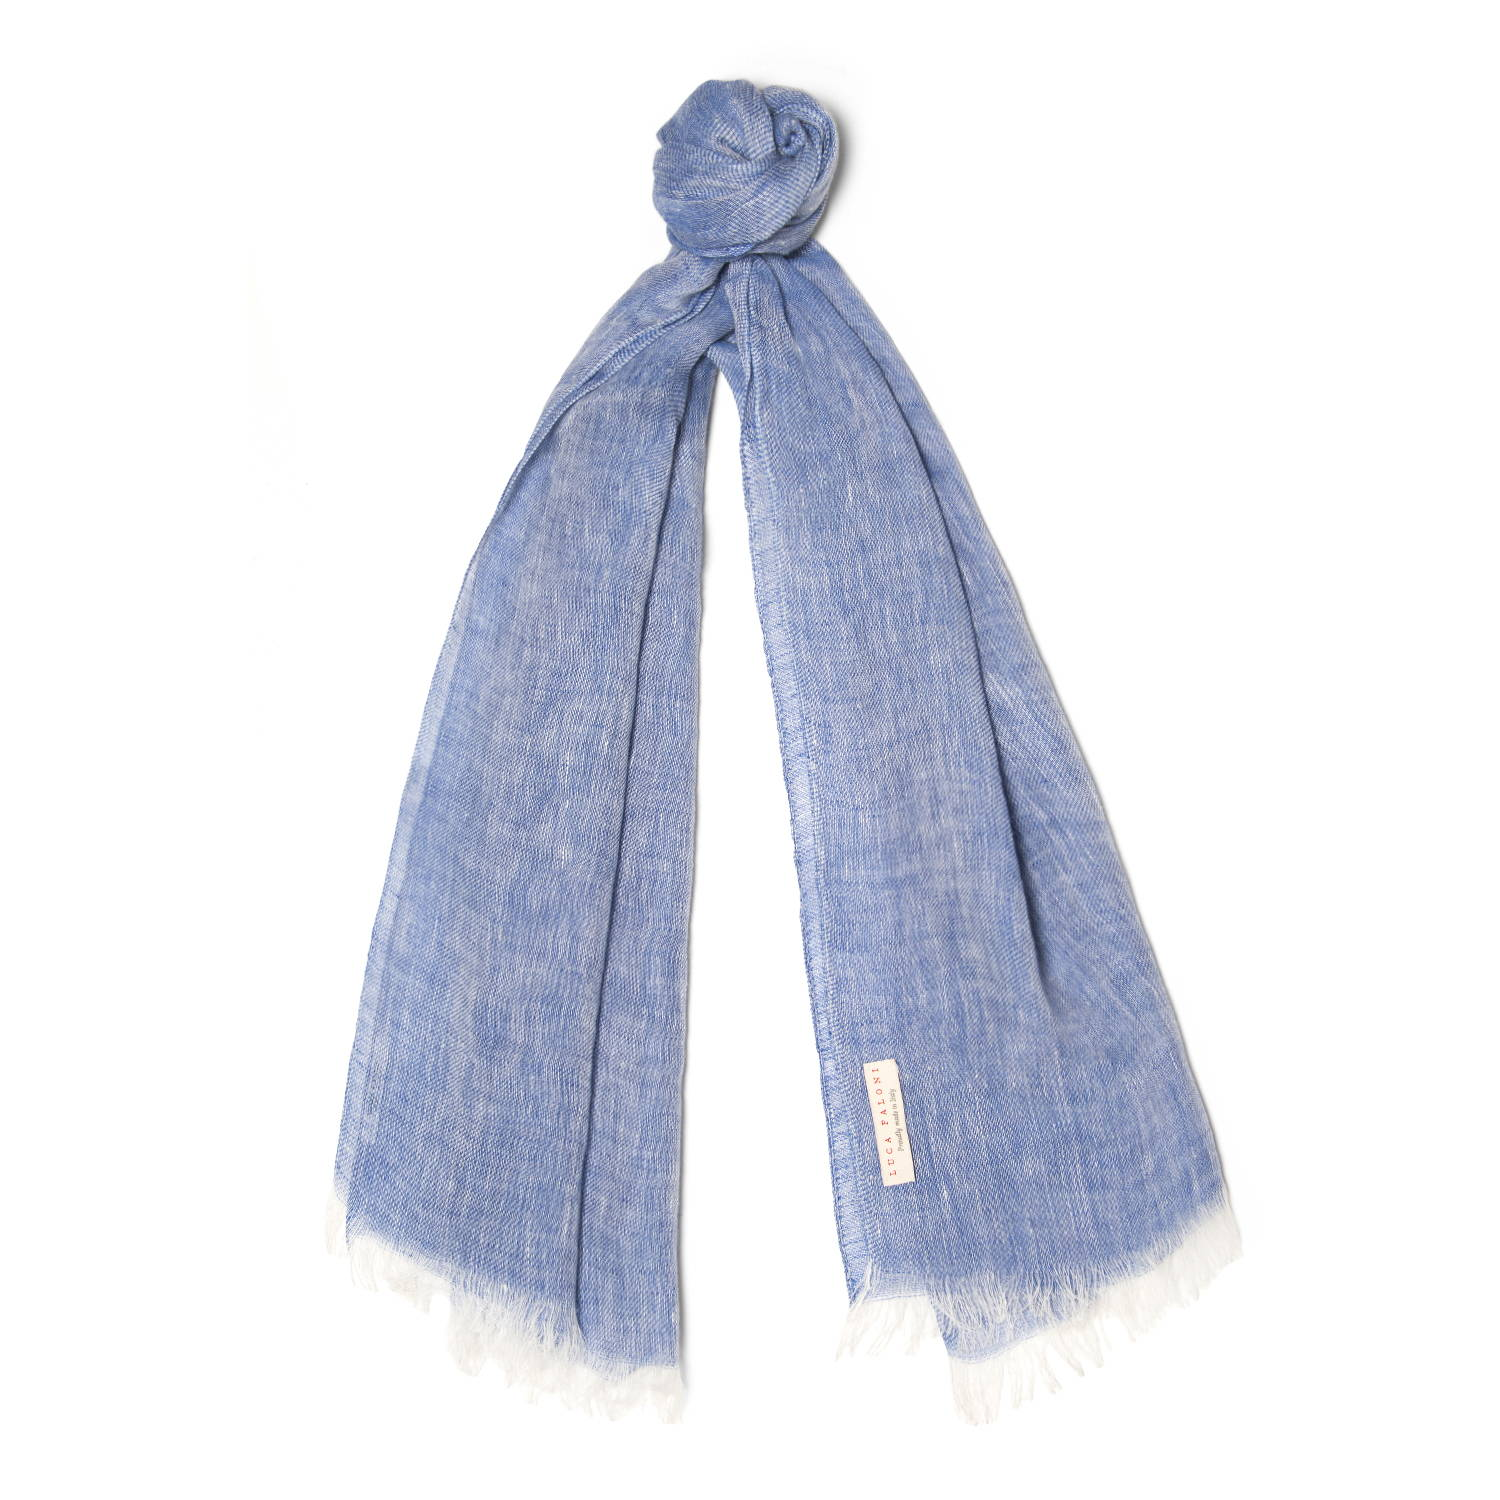 Luca Faloni Blue Linen Scarf Made in Italy